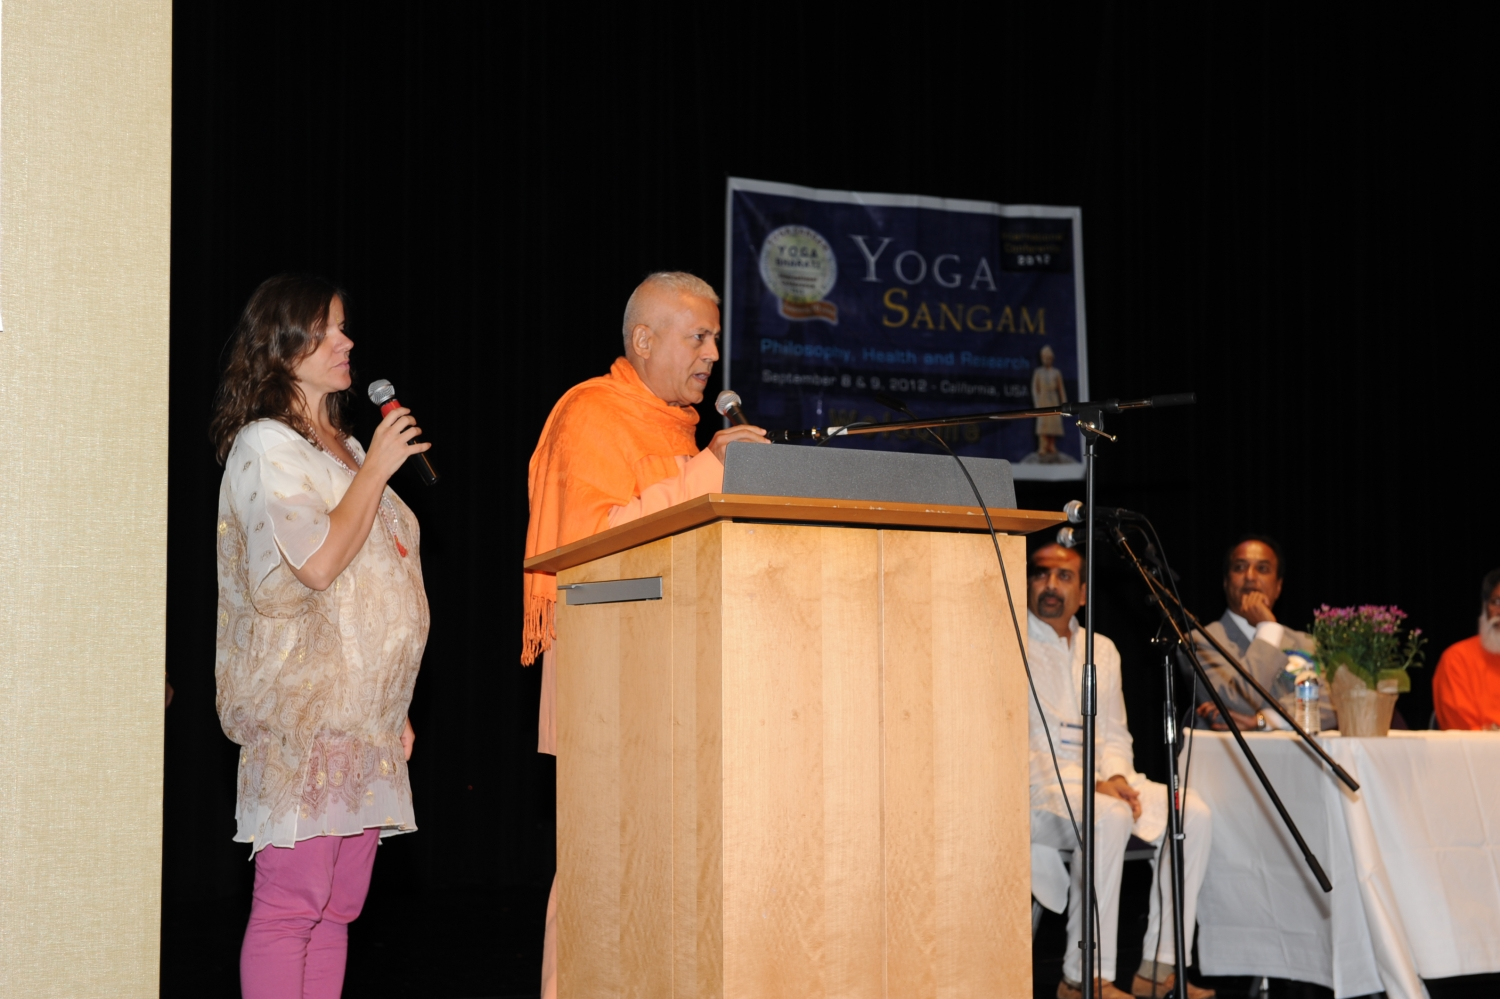 Yoga Sangam, International Yoga Conference - Palo Alto, San Francisco, Califórnia - 2012, Setembro